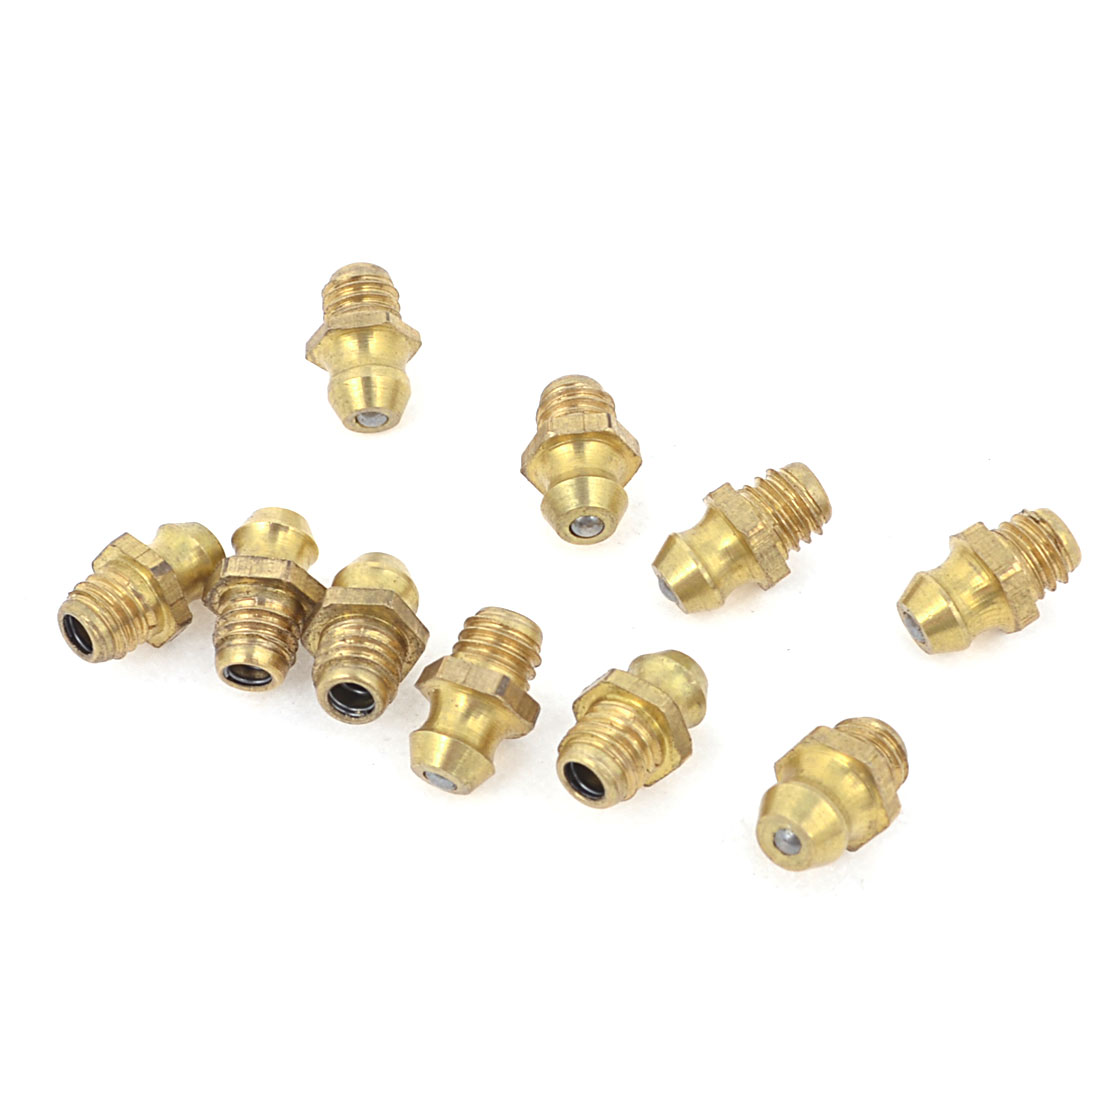 10 Pcs Gold Tone 6mm Dia Male Thread Straight Grease Nipples Fittings